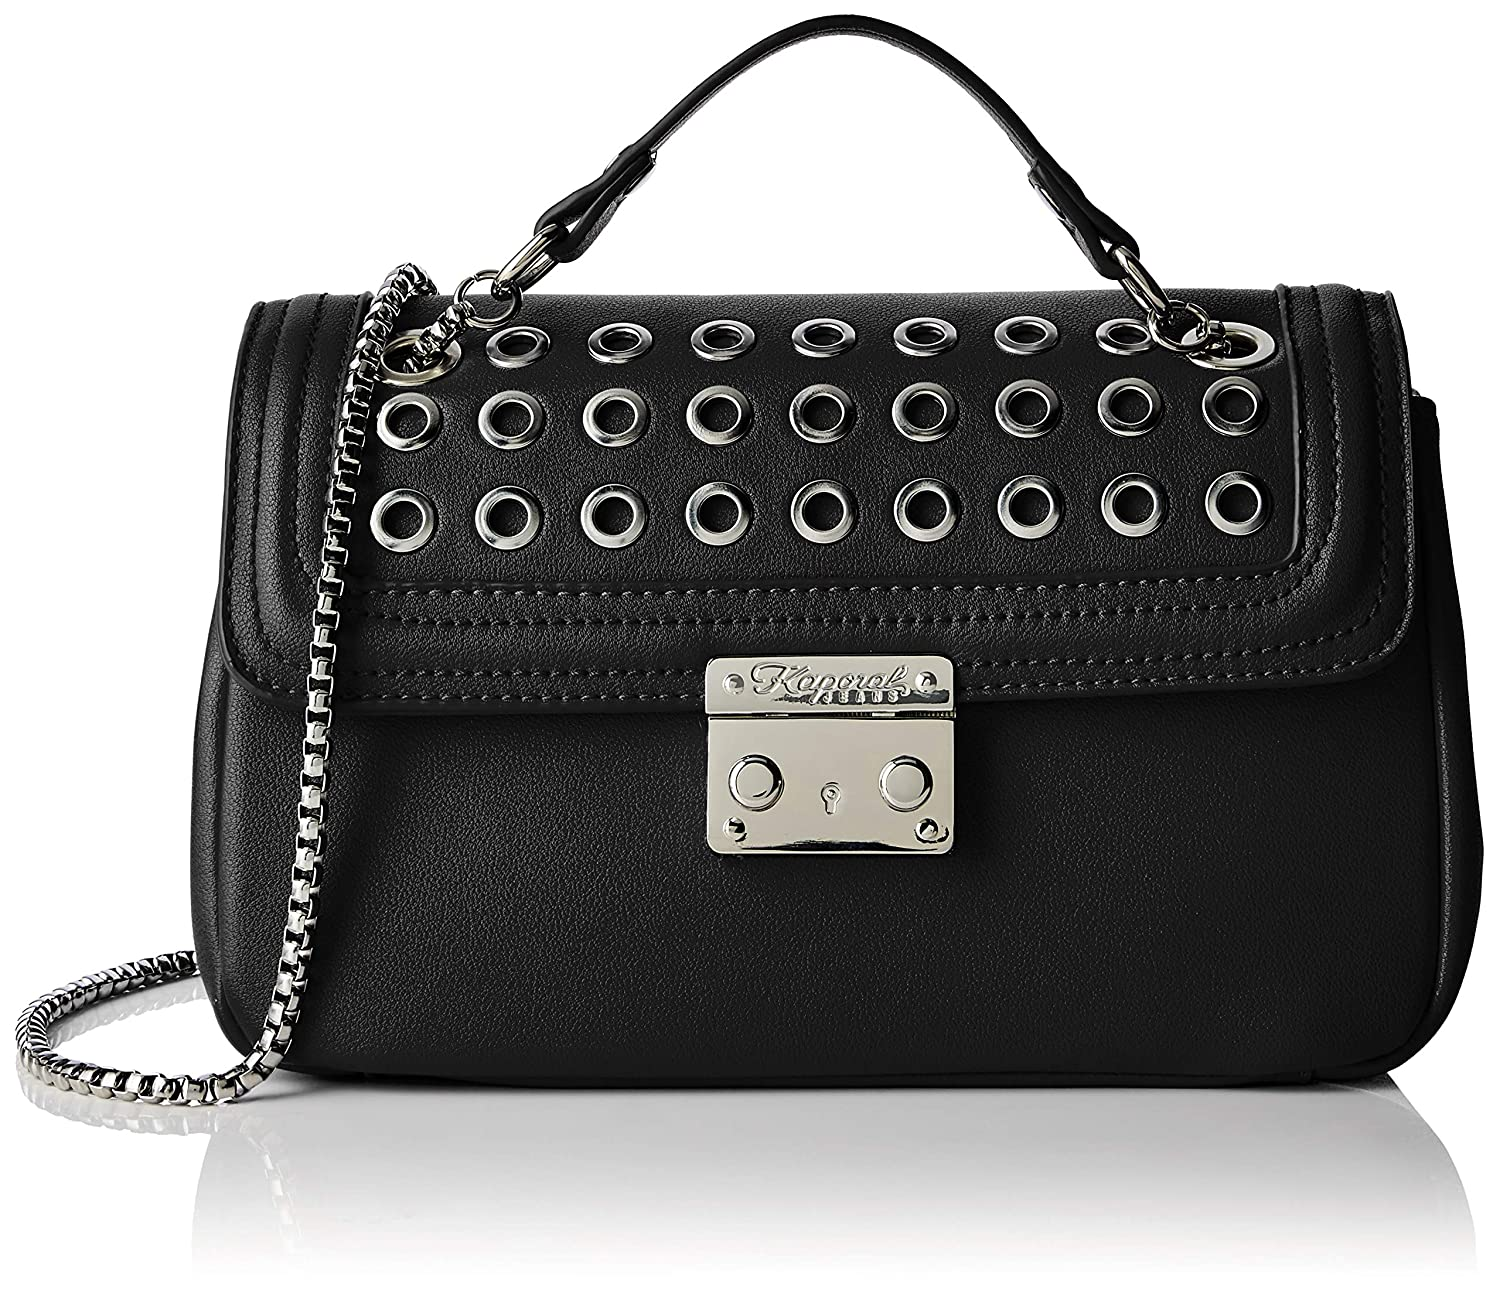 Black Kaporal Women's Wicia TopHandle Bag